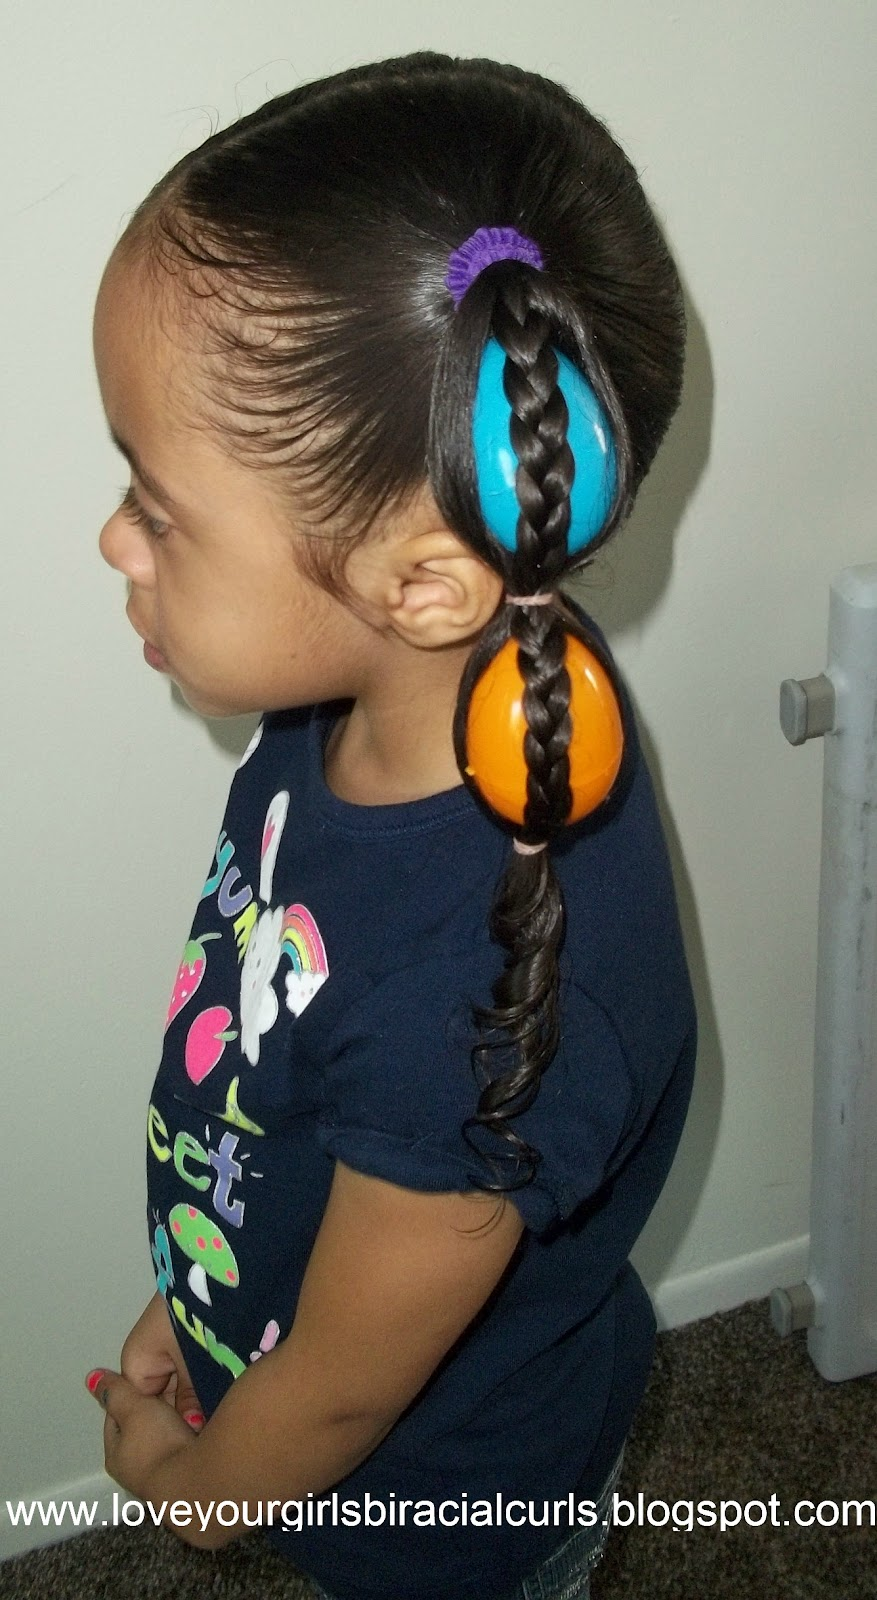 Love Your Girls Biracial Curls: Egg Tails Easter Hairstyle For Girls